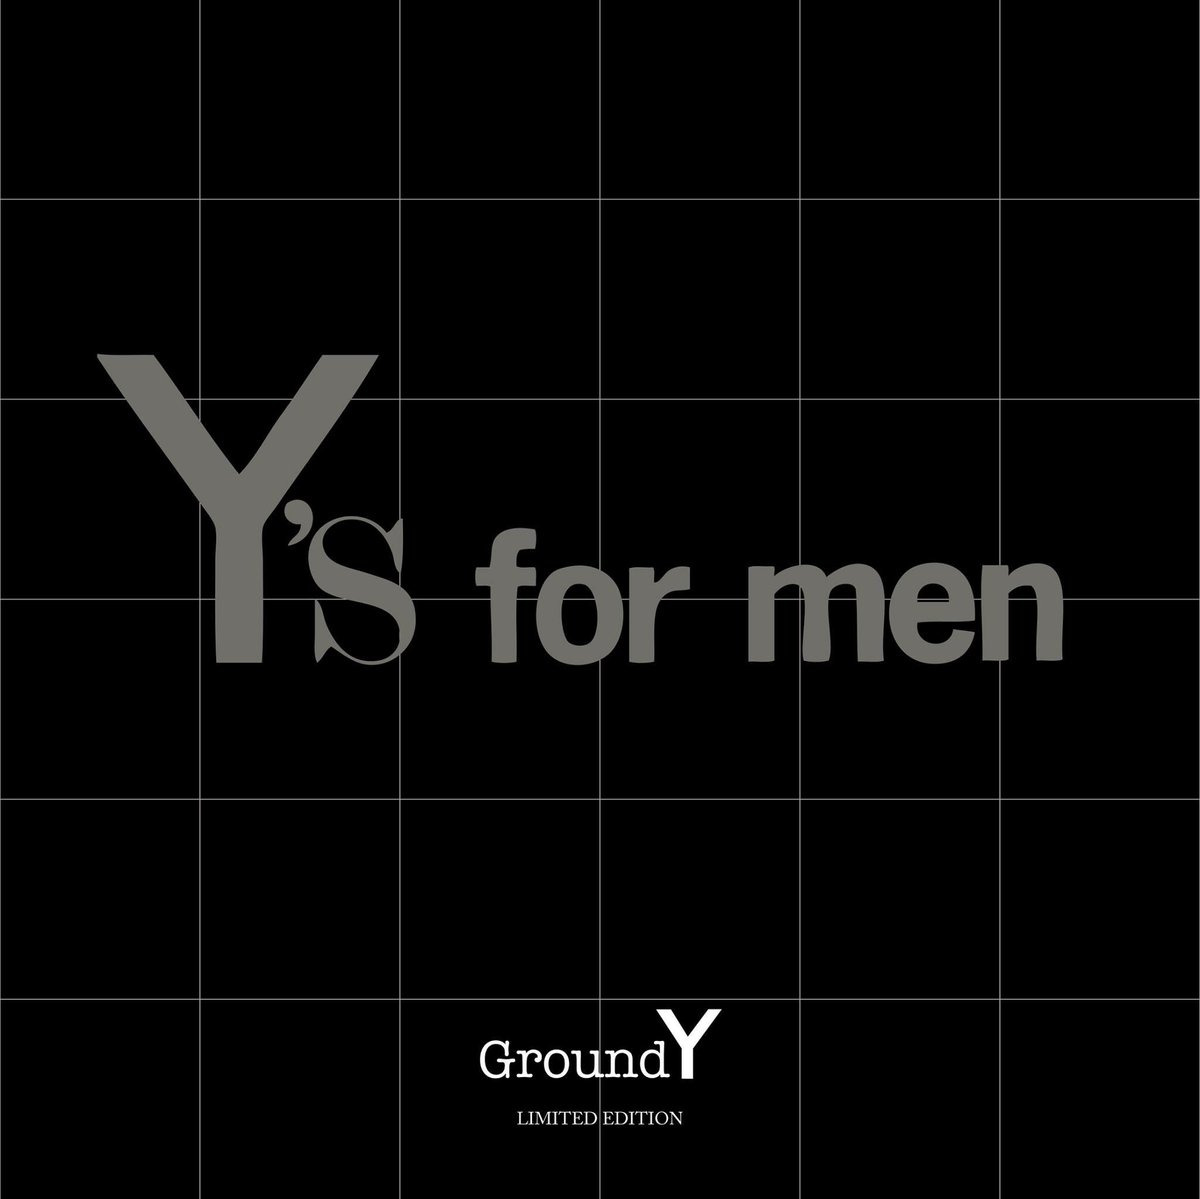 """Ground Y Official on Twitter: """"2017.9.9 Fri〜 release Y's for men Homage #groundy #yohjiyamamoto #グラウンドワイ https://t.co/71wsIqYq8h"""""""